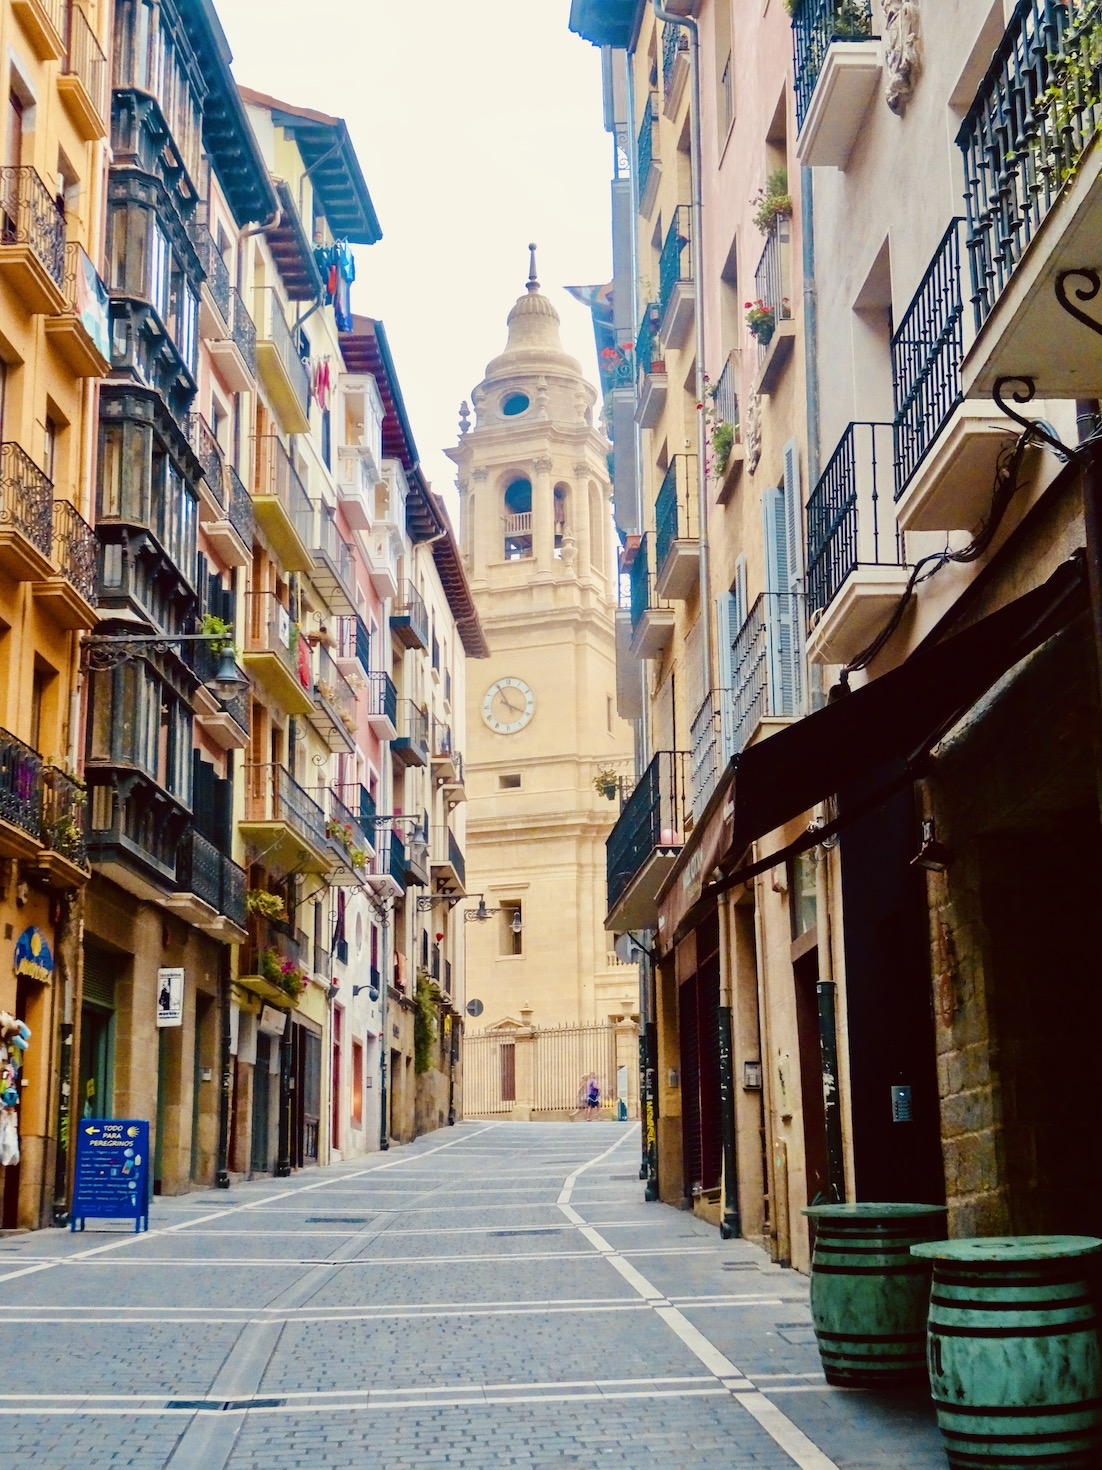 Pamplona Cathedral from Calle de la Curia.